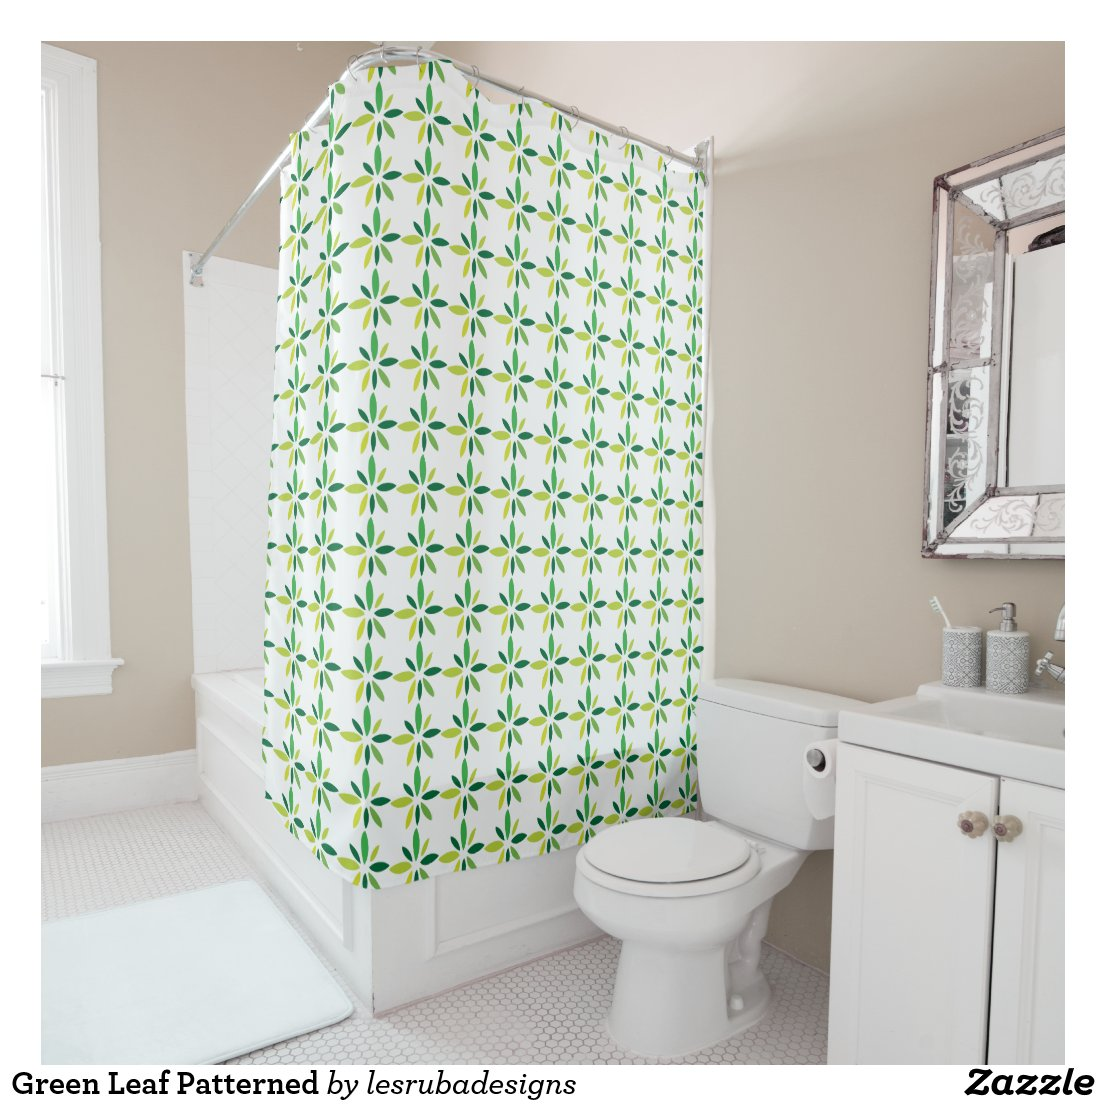 Green Leaf Patterned Shower Curtain